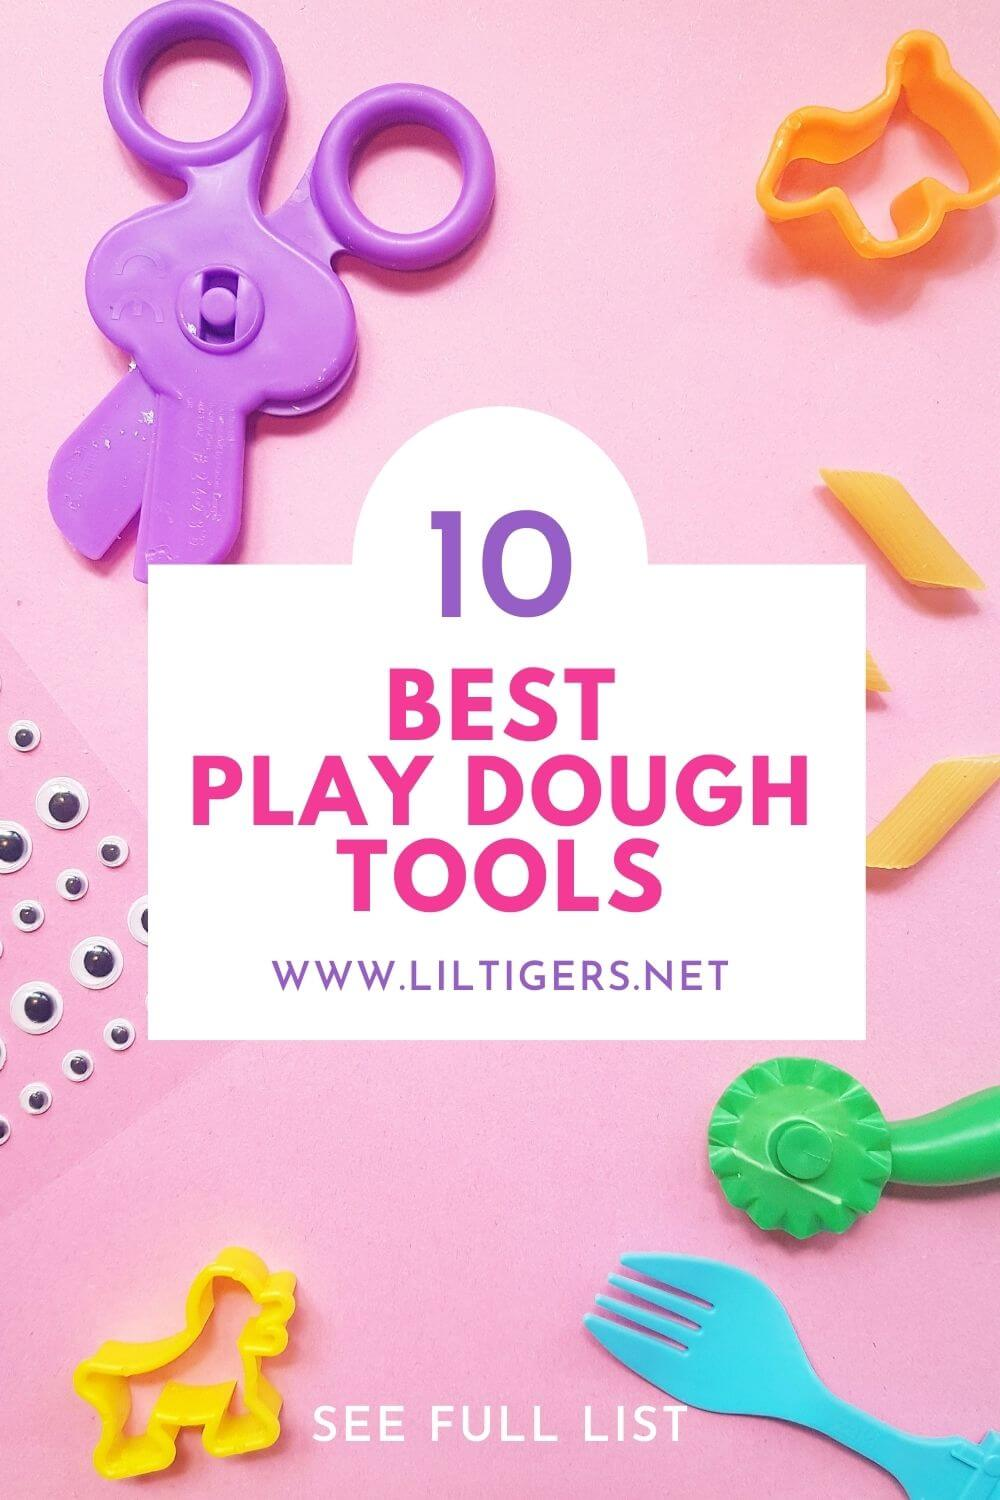 10 Best Play Dough tools